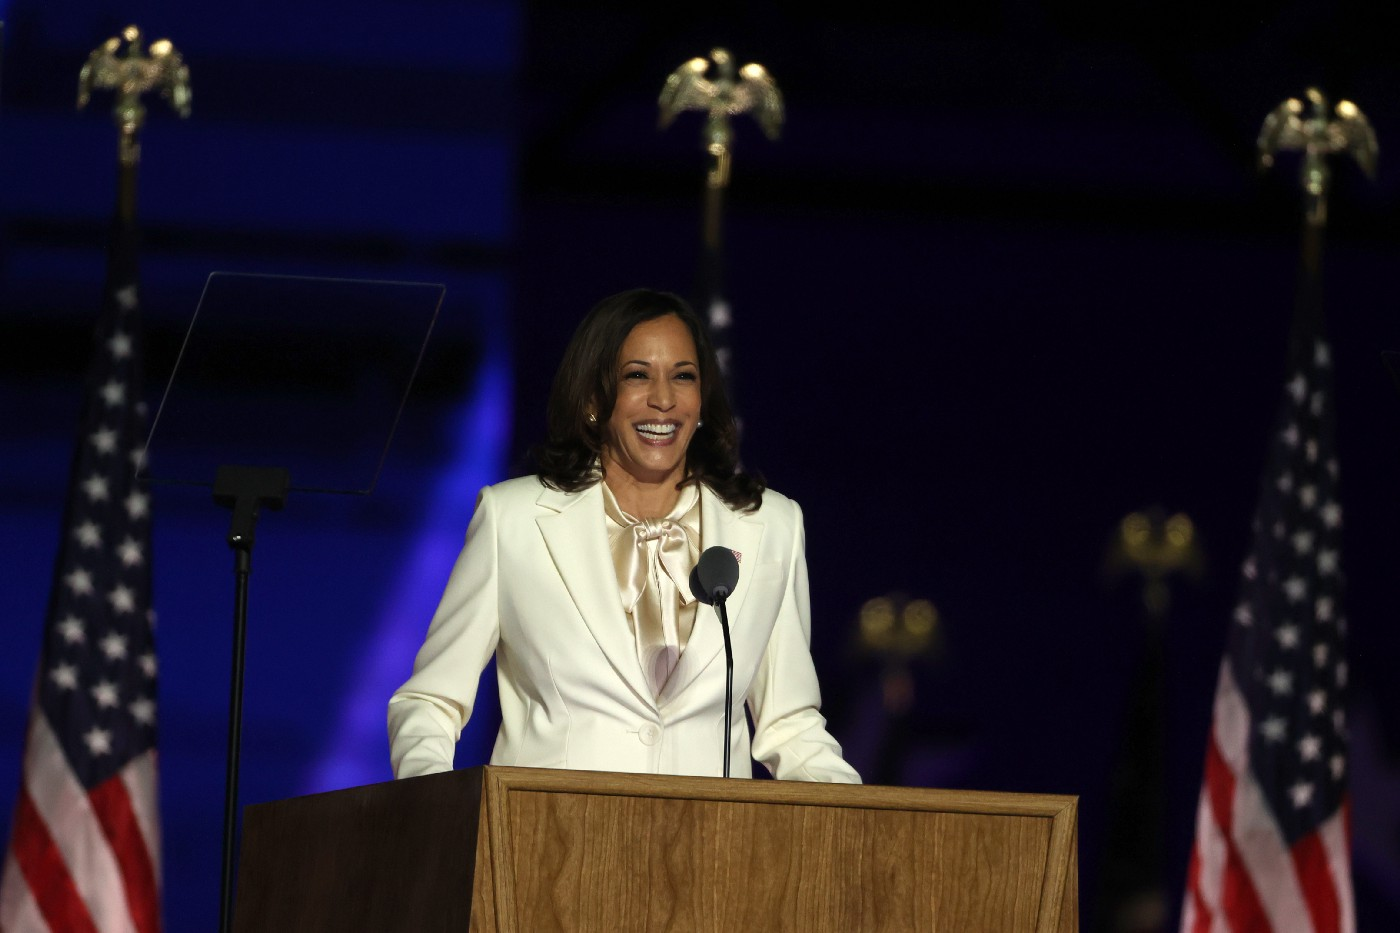 Vice President-elect Kamala Harris wearing a white suit giving an address to a crowd in Wilmington.